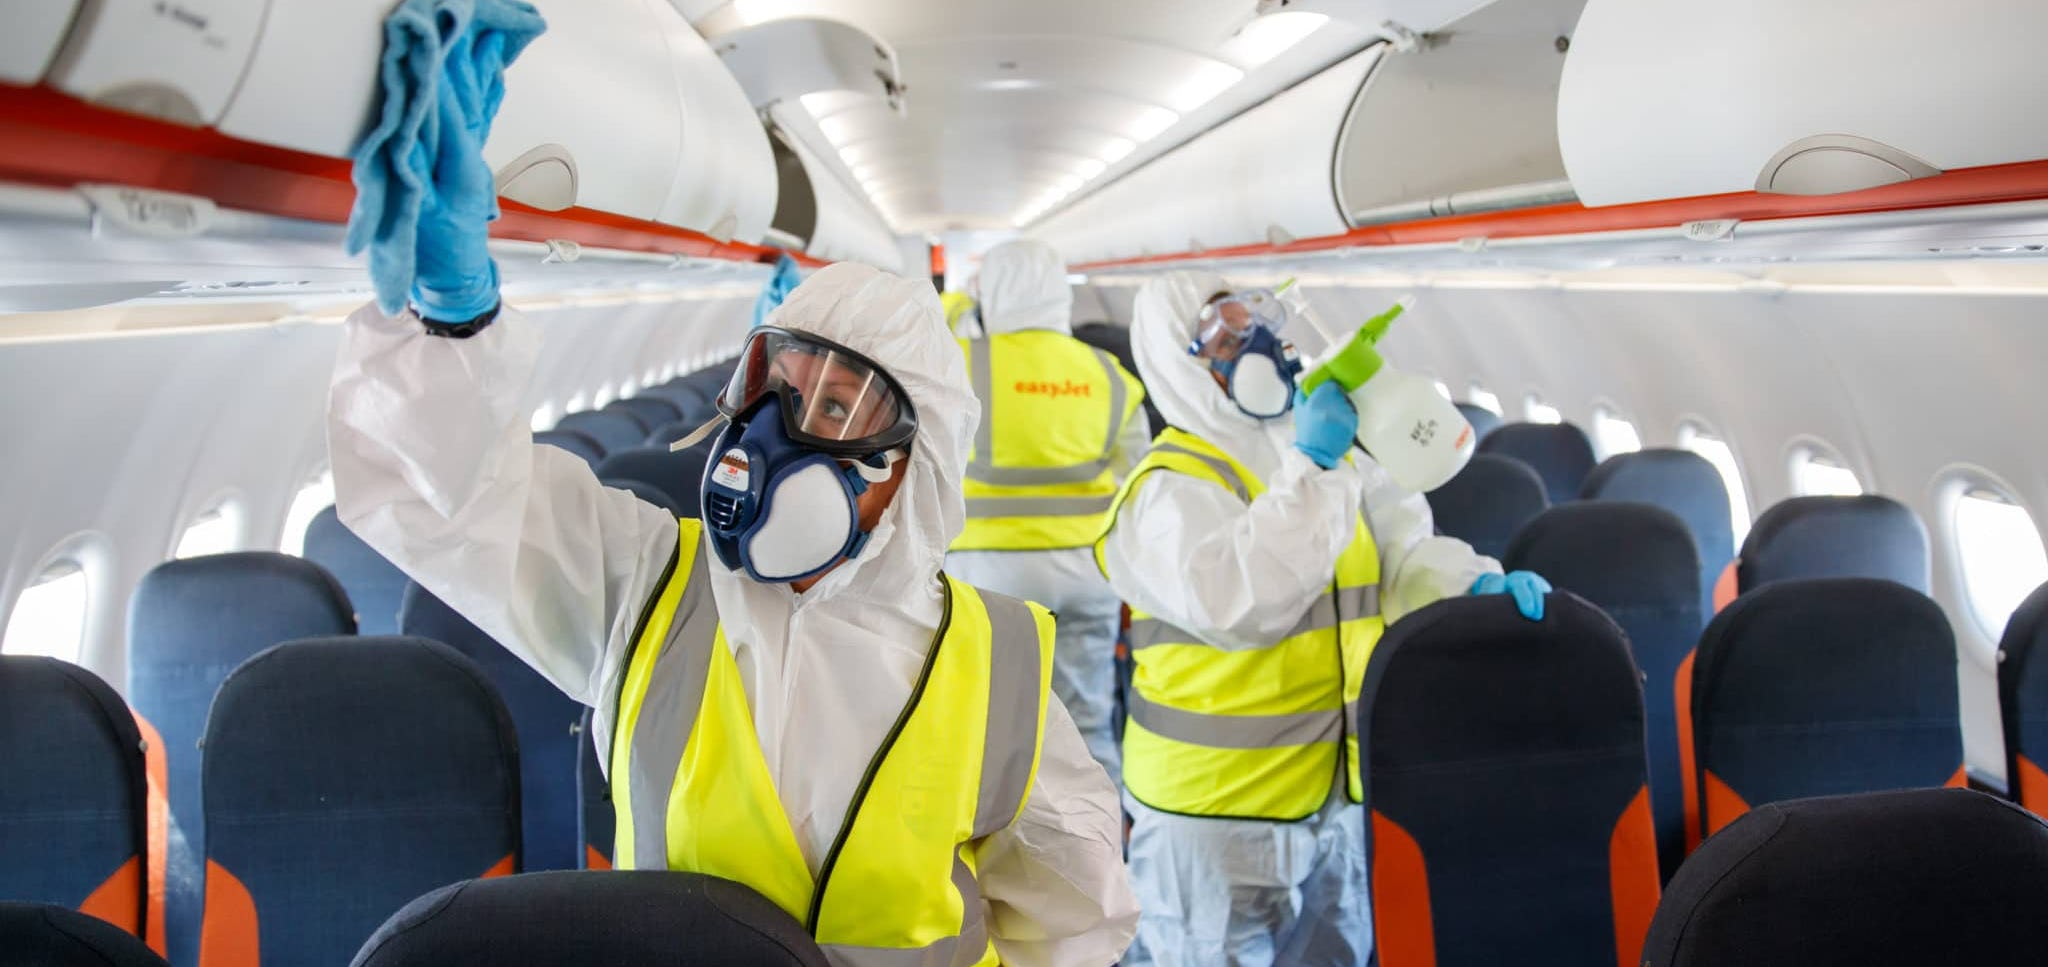 Cleaners disinfecting plane